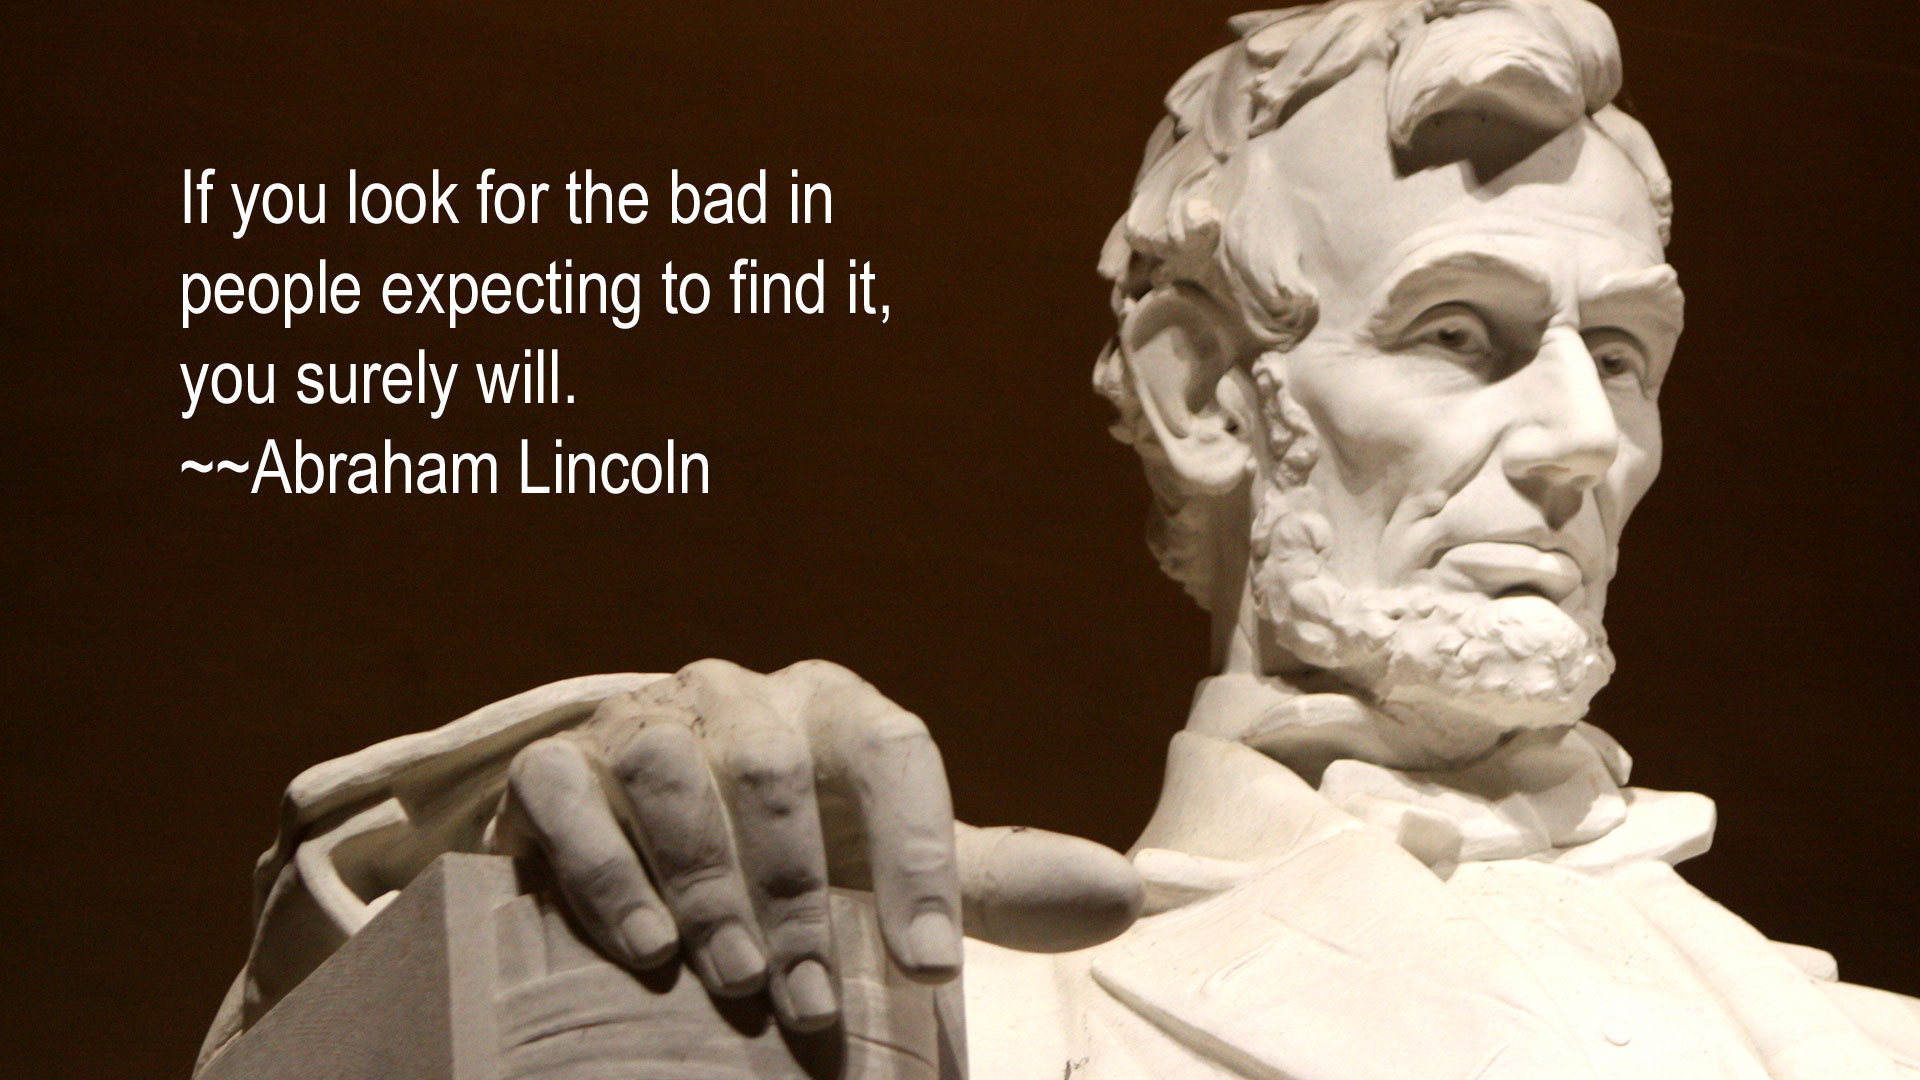 FunMozar Abraham Lincoln Wallpapers 1920x1080